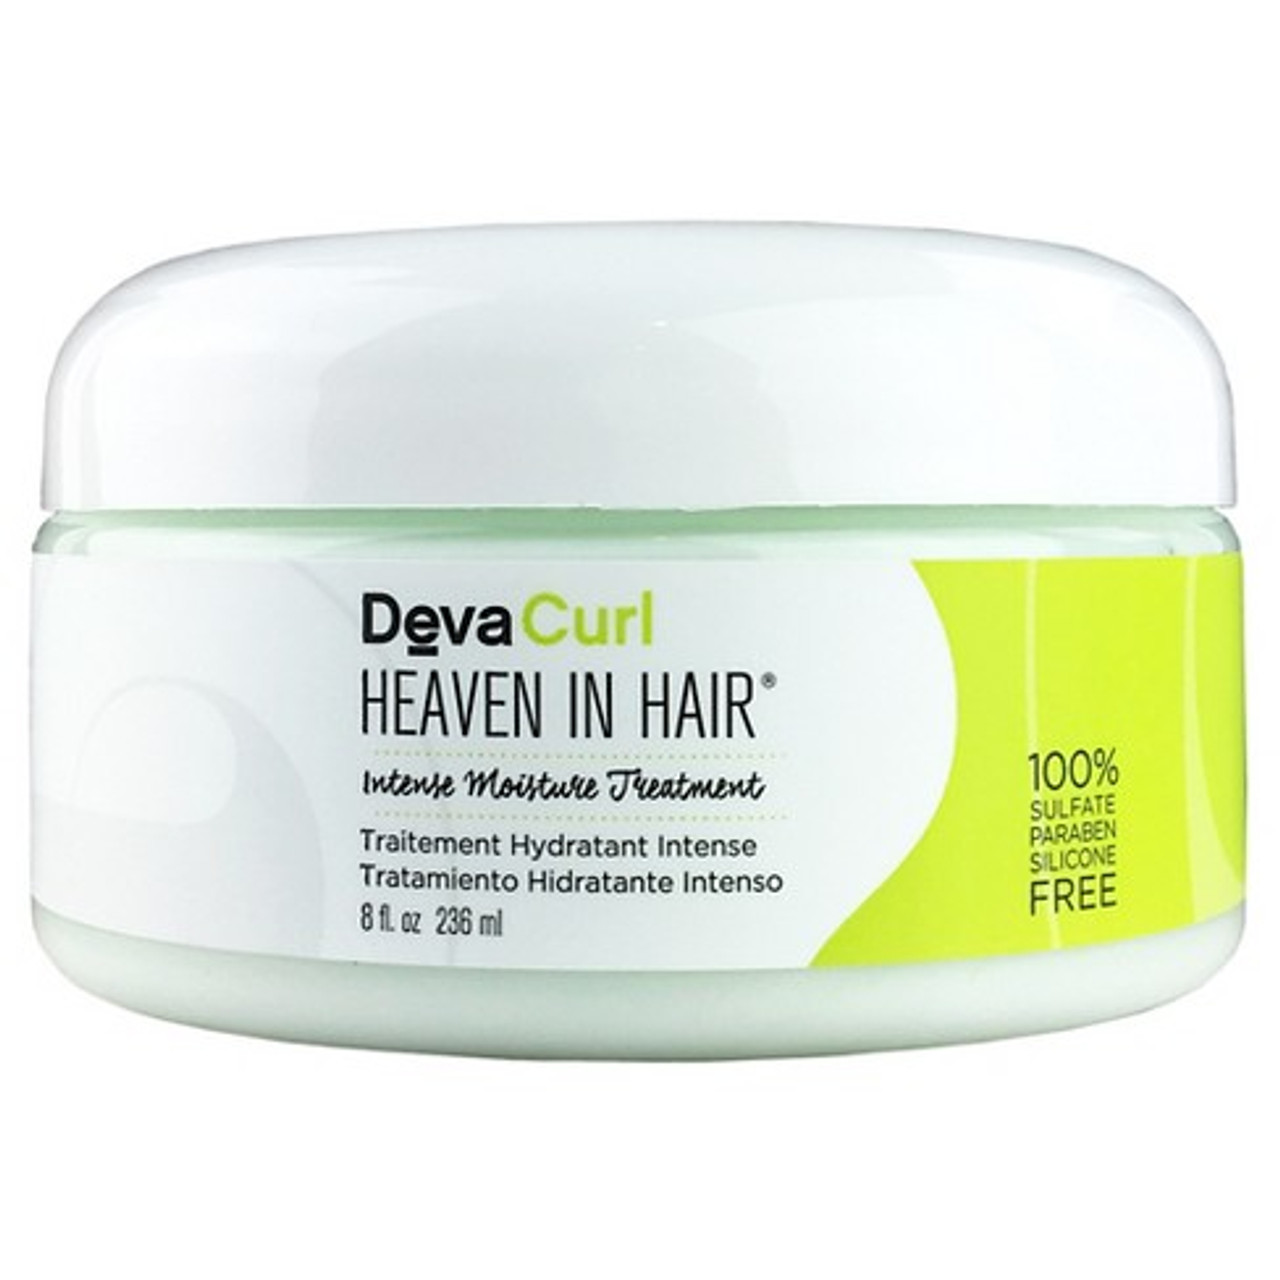 DevaCurl Heaven In Hair 8 oz